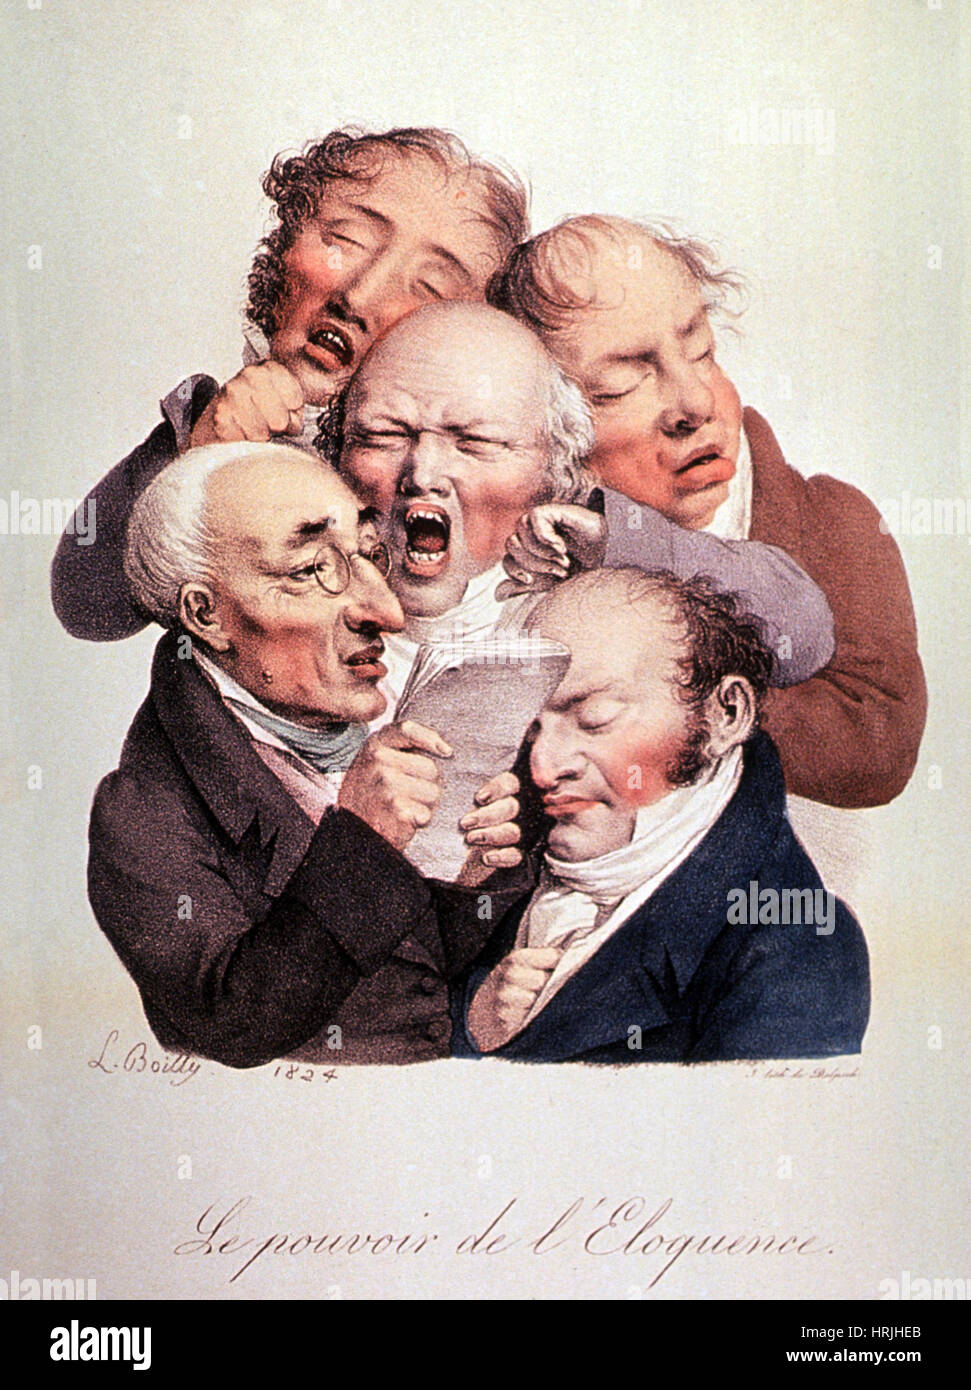 The Power of Eloquence, 1824 - Stock Image